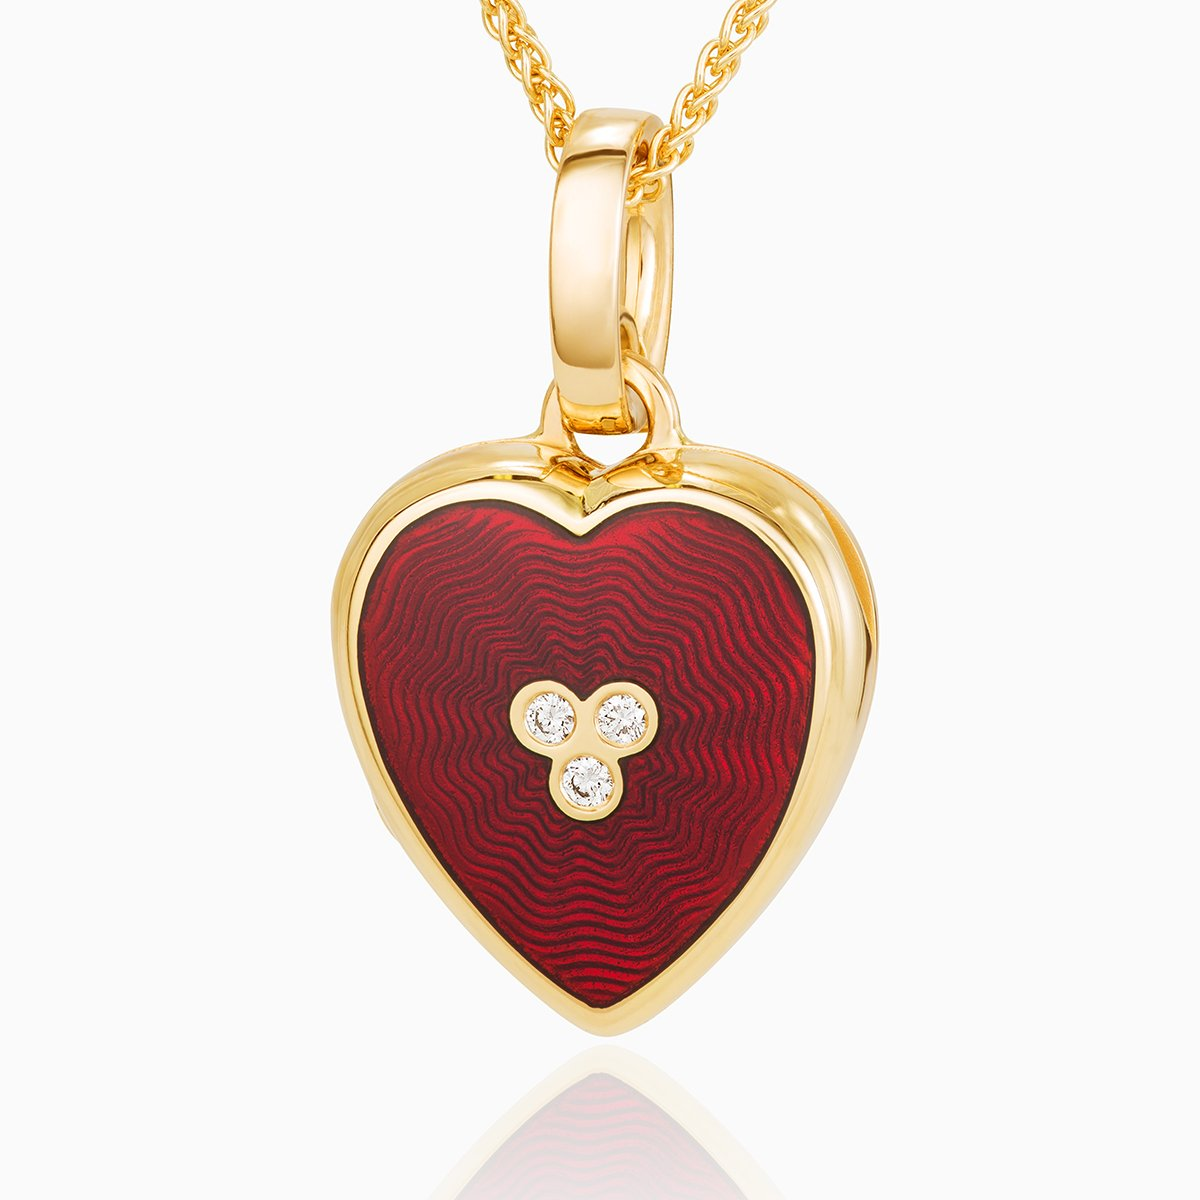 Product title: Petite Red Guilloche Heart Locket, product type: Locket